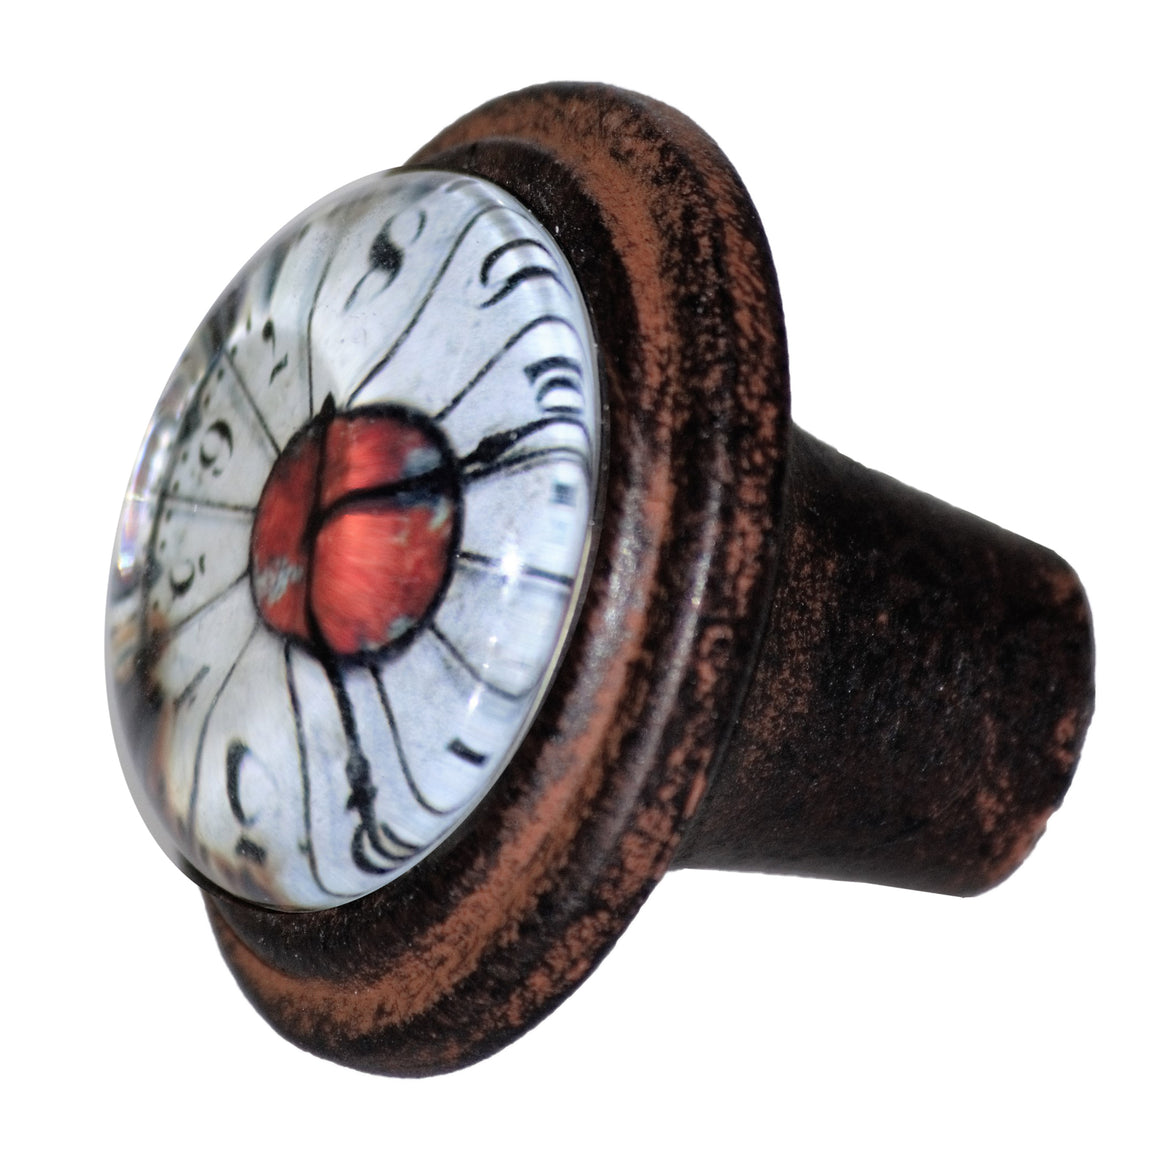 Antique Clock Face Iron Knob - Cafe Brown Charleston Knob Company